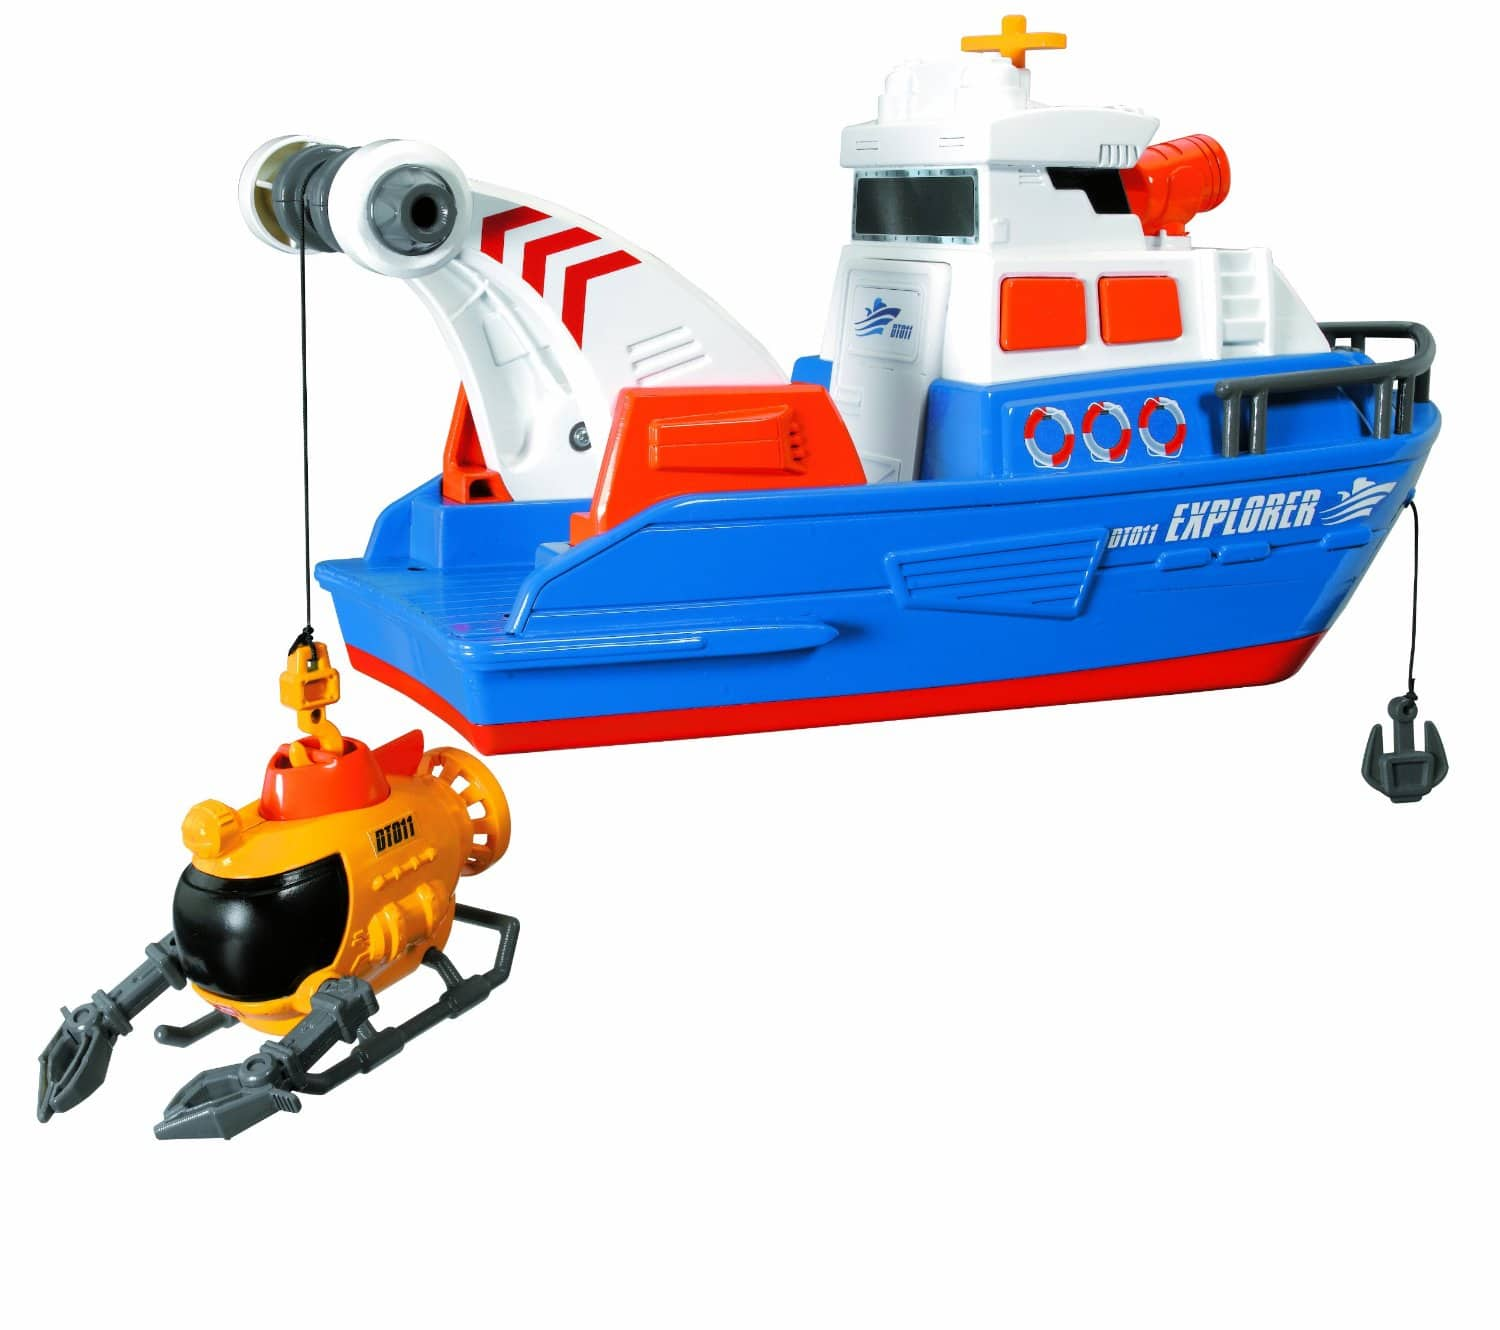 Top 10 Best Boat Toys for Kids in 2020 Reviews